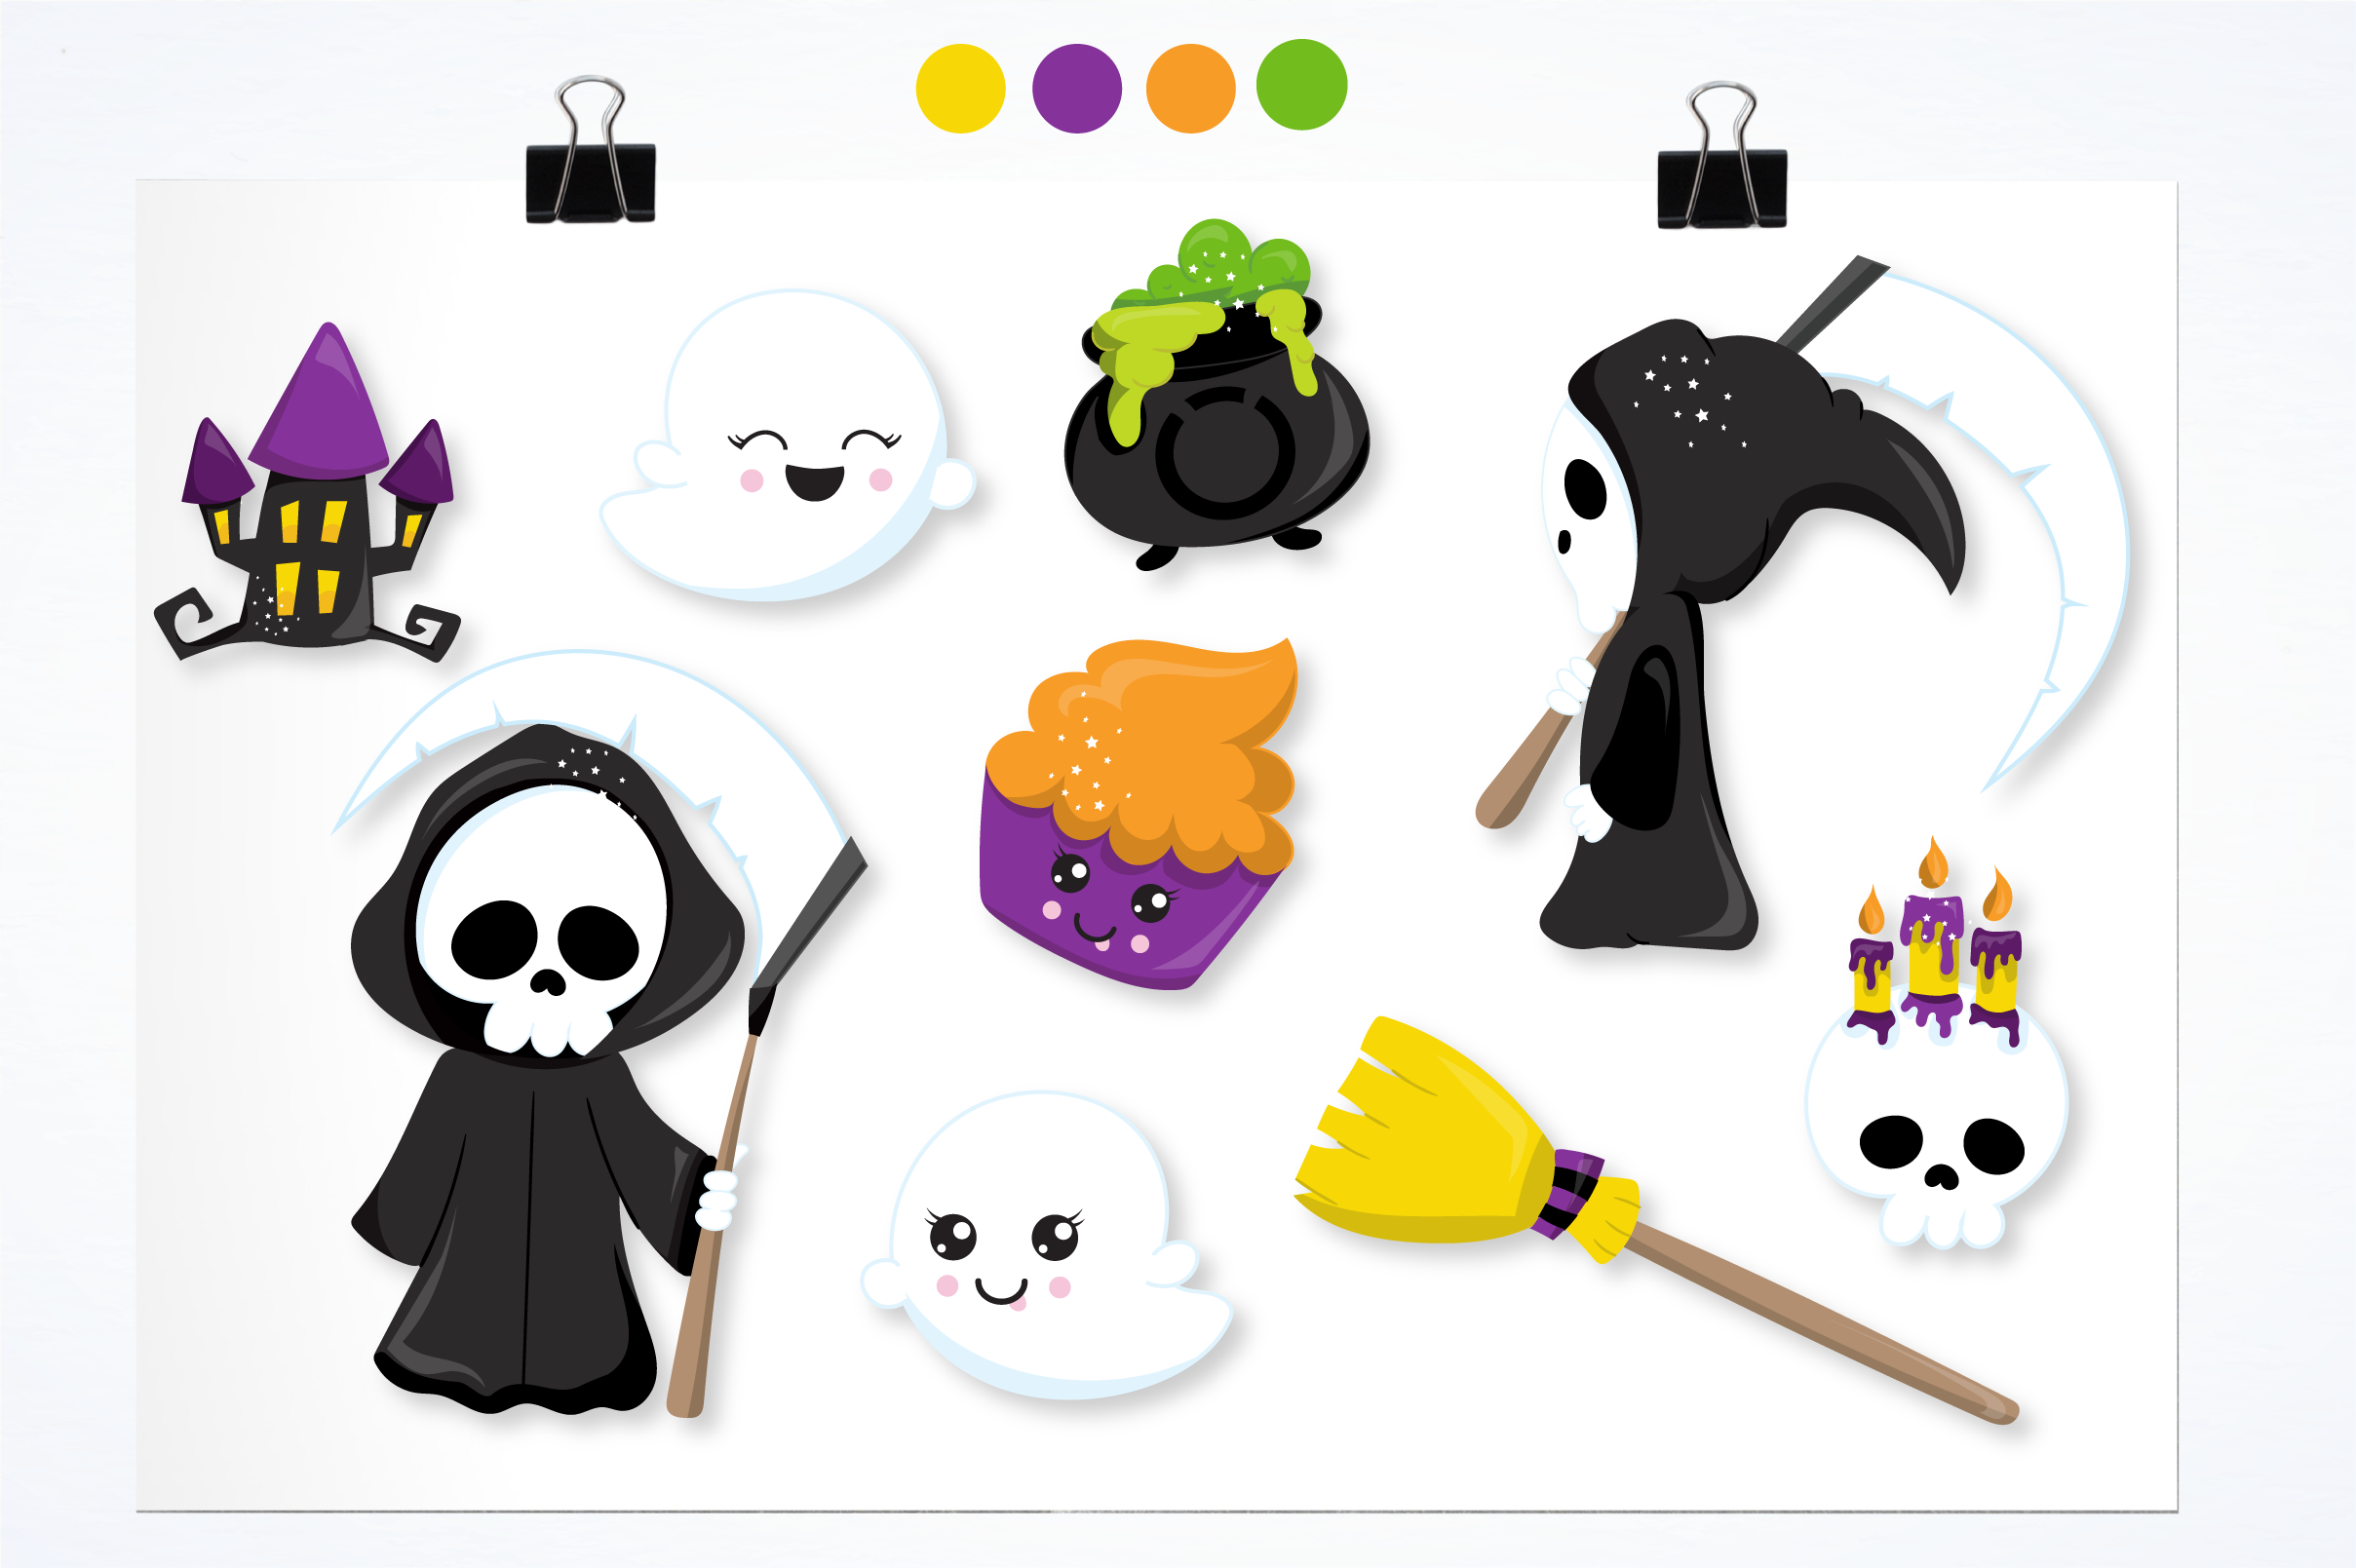 spooky reaper graphics and illustrations example image 5